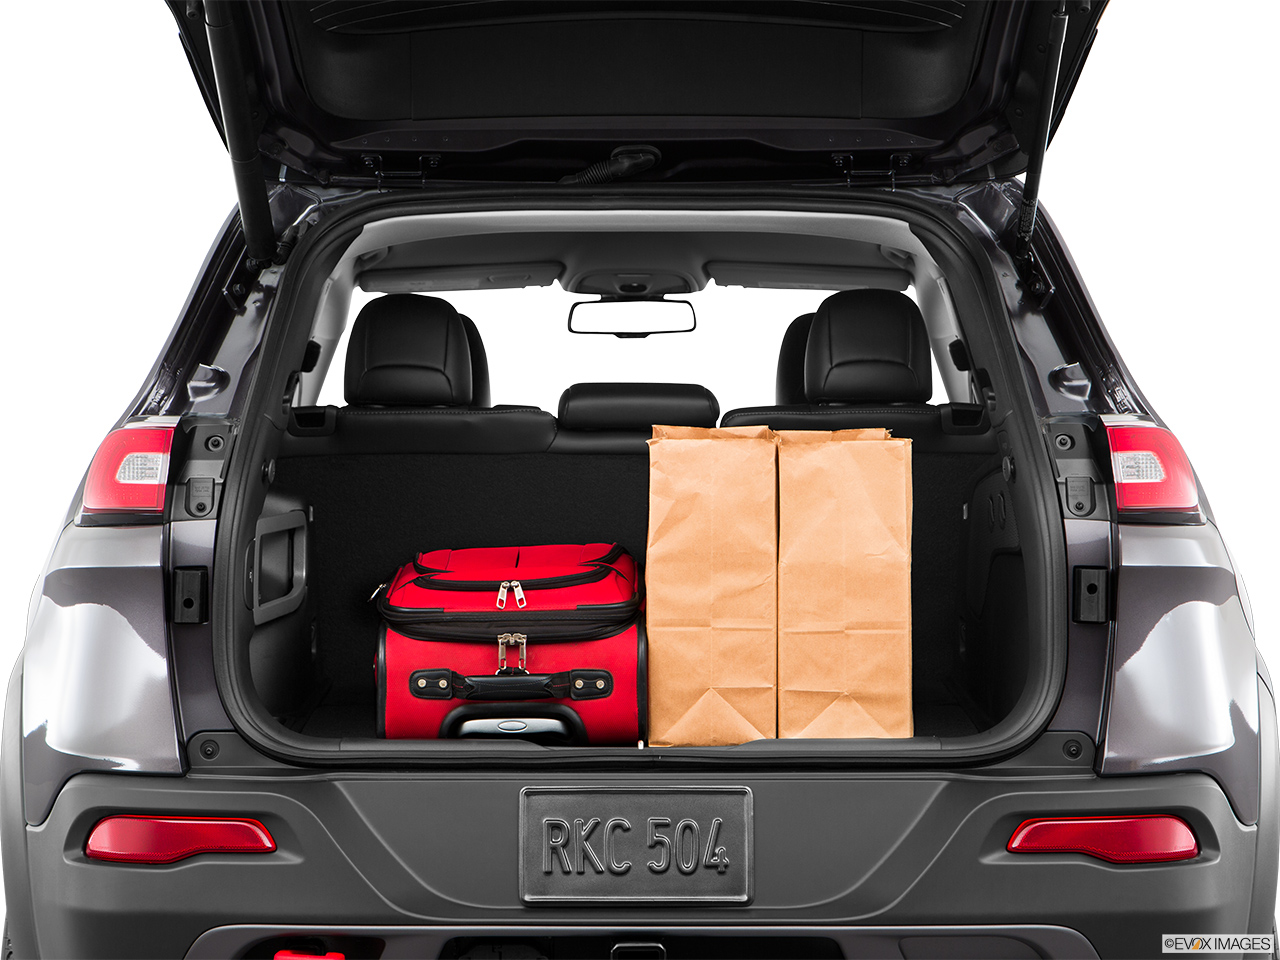 2016 Jeep Cherokee Trunk Space